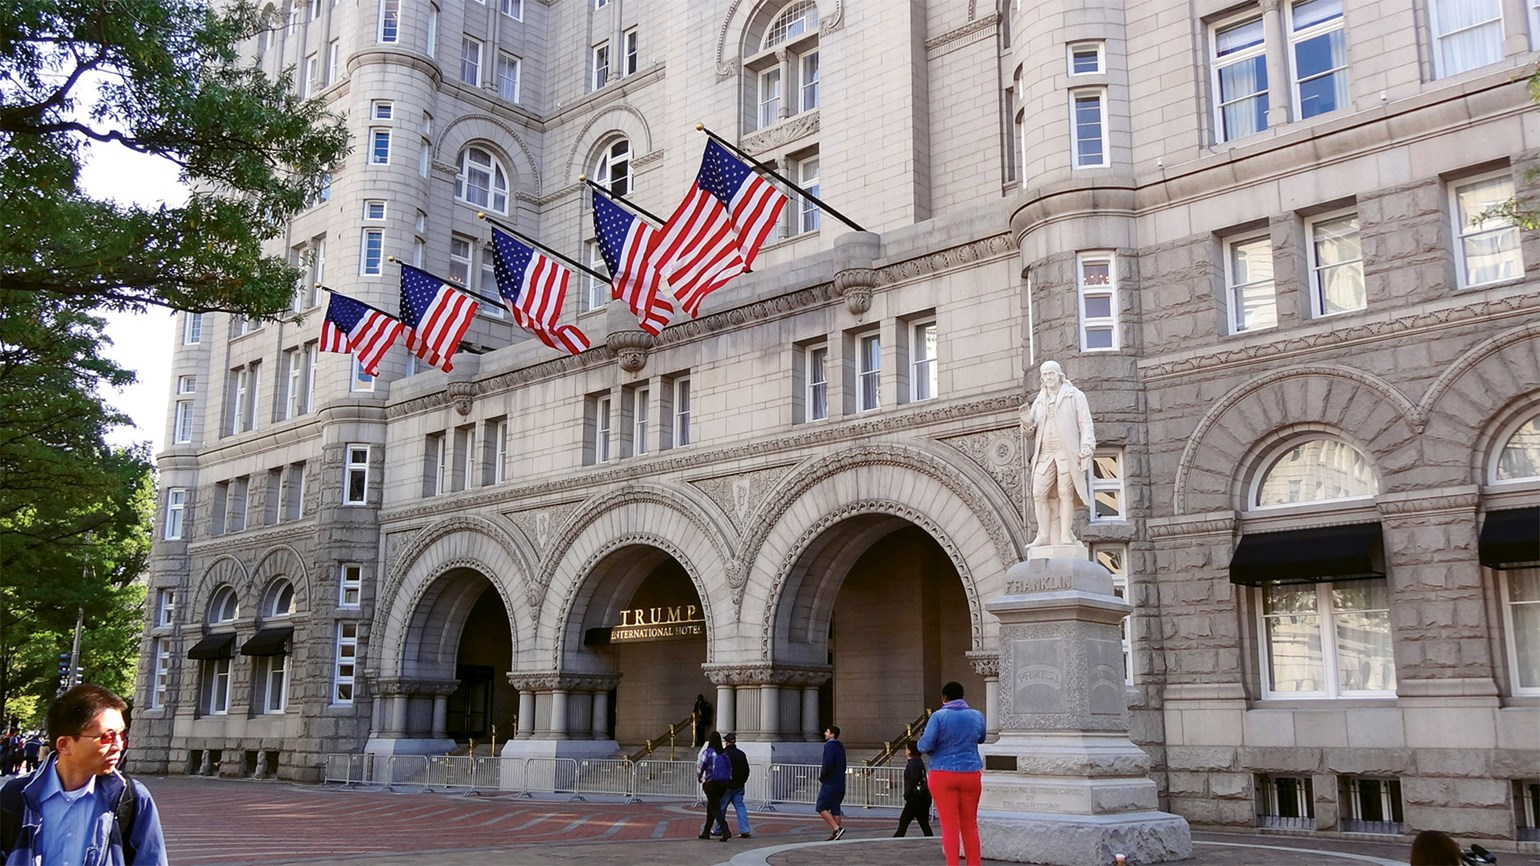 Trump might need to concede D.C. hotel before Inauguration Day